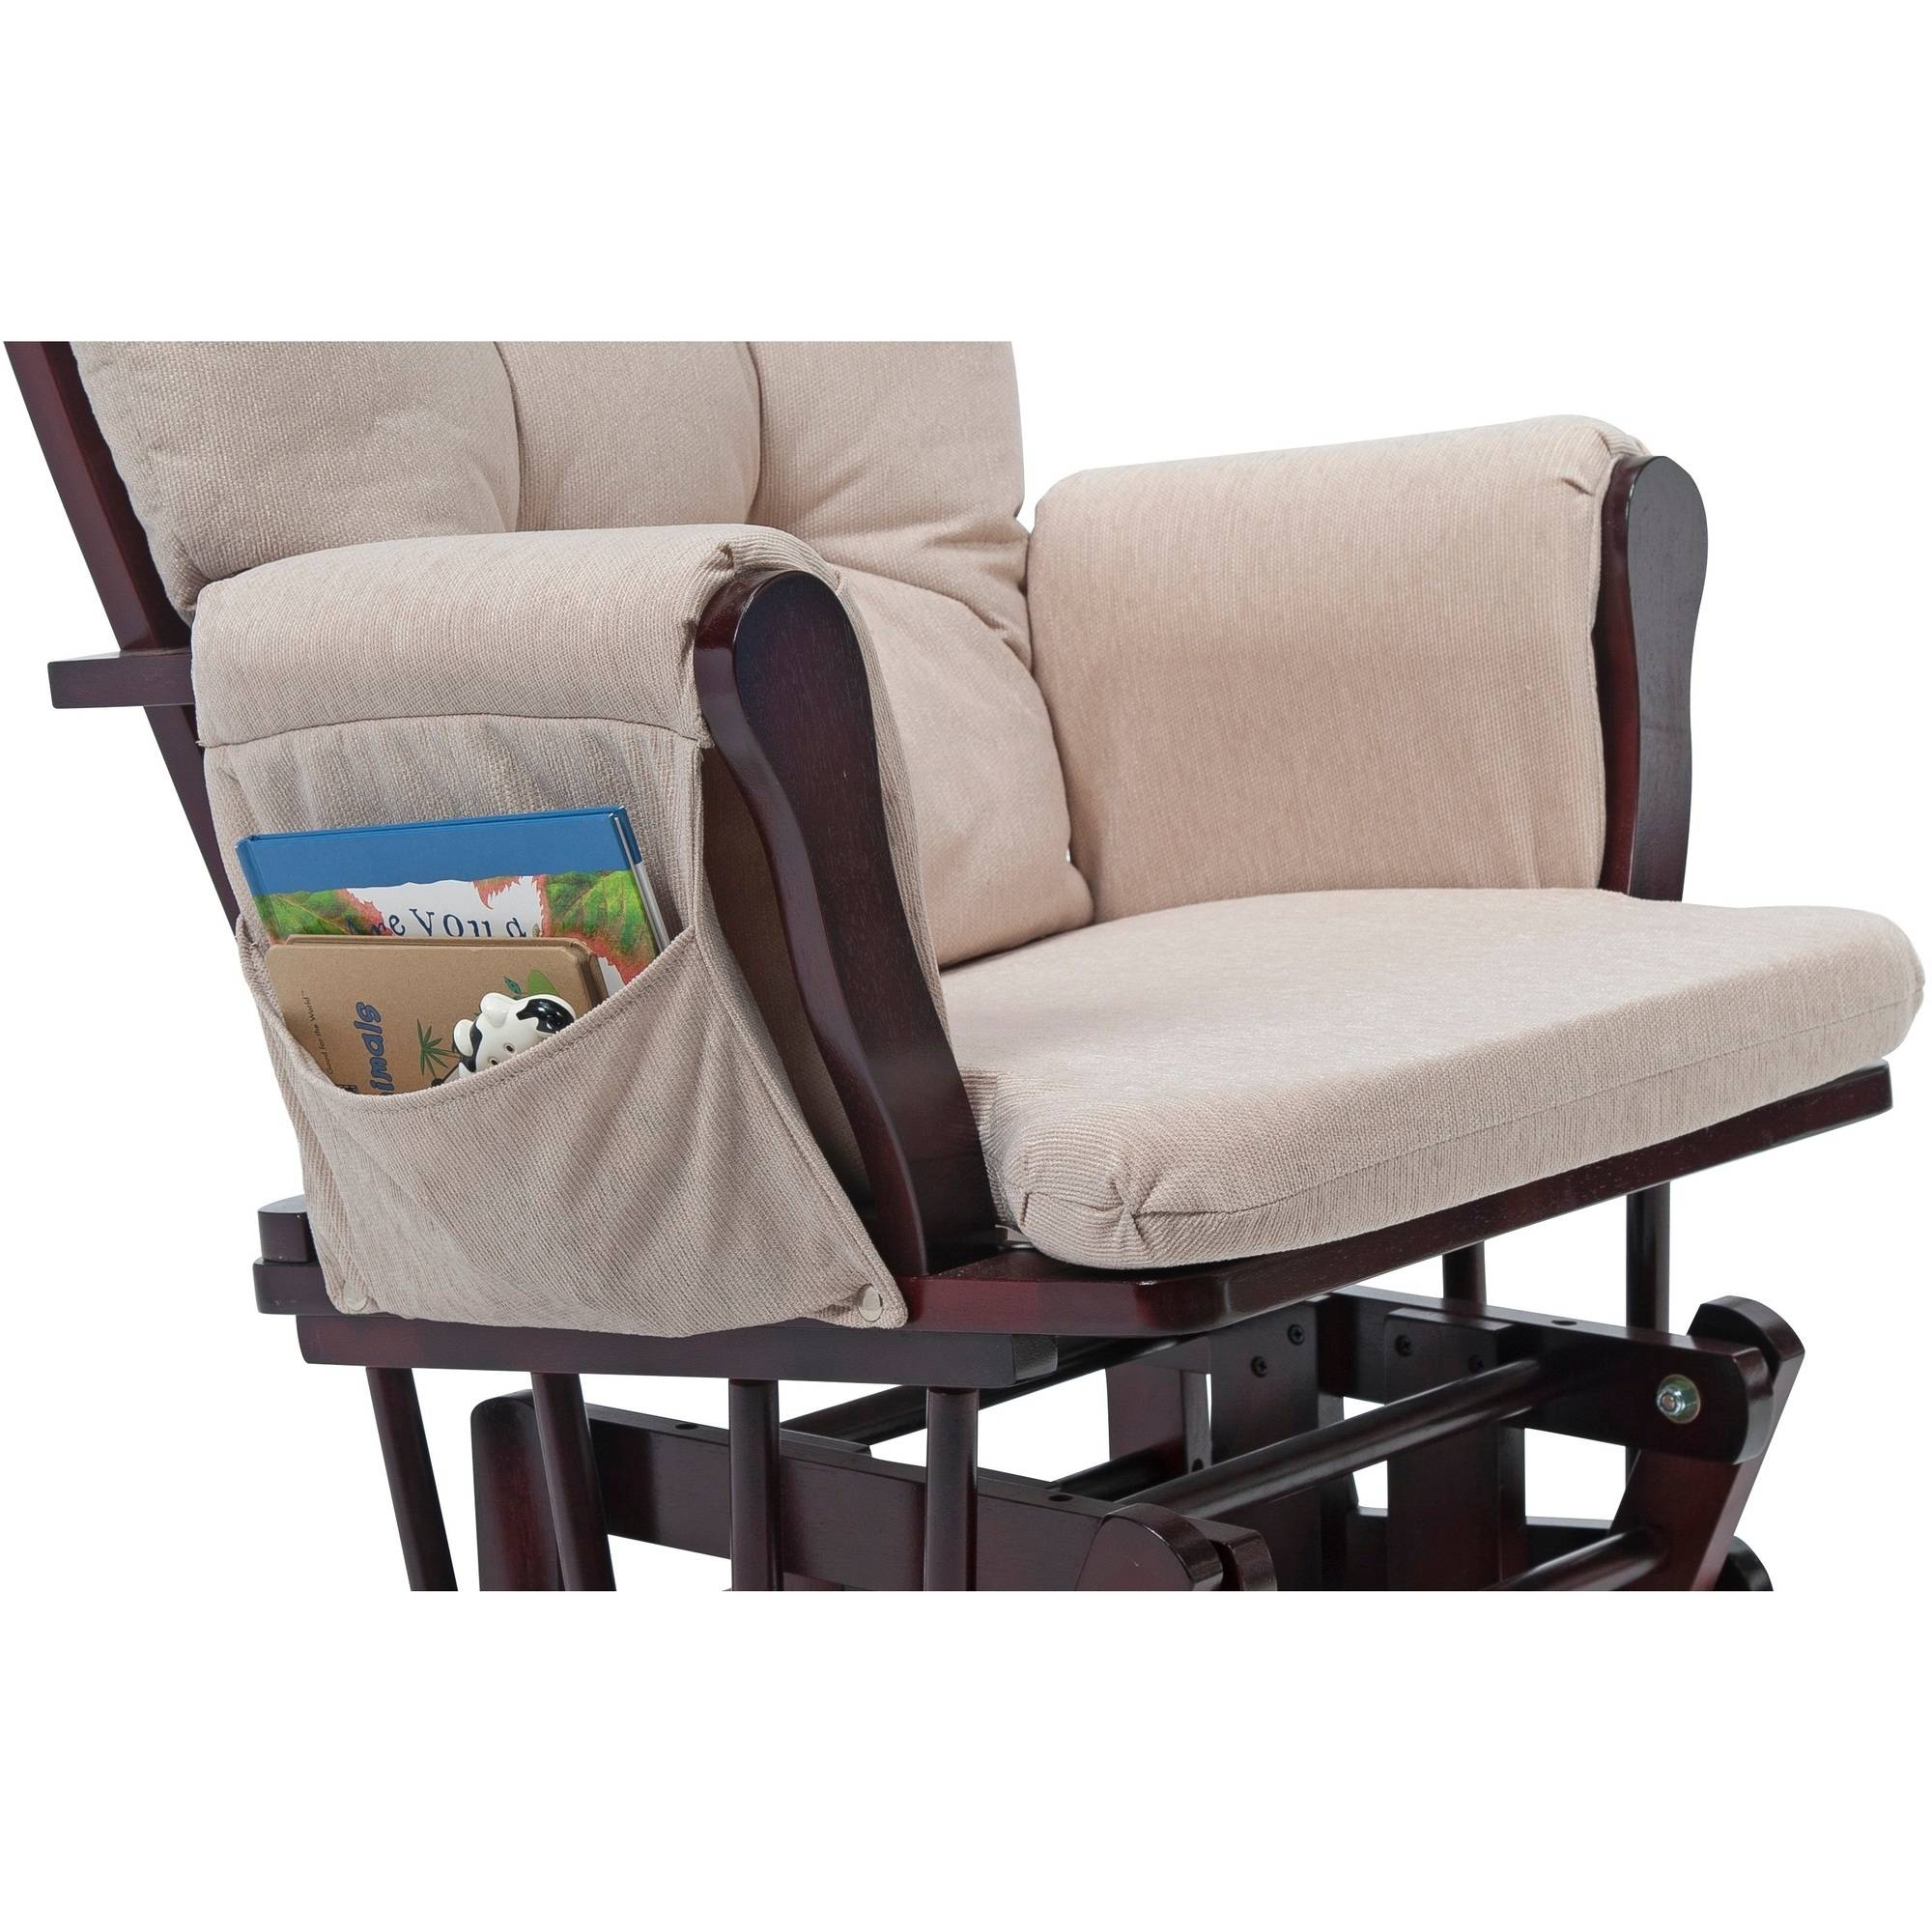 Nursery Glider Ottoman Baby Set Rocking Chair Rocking Wood